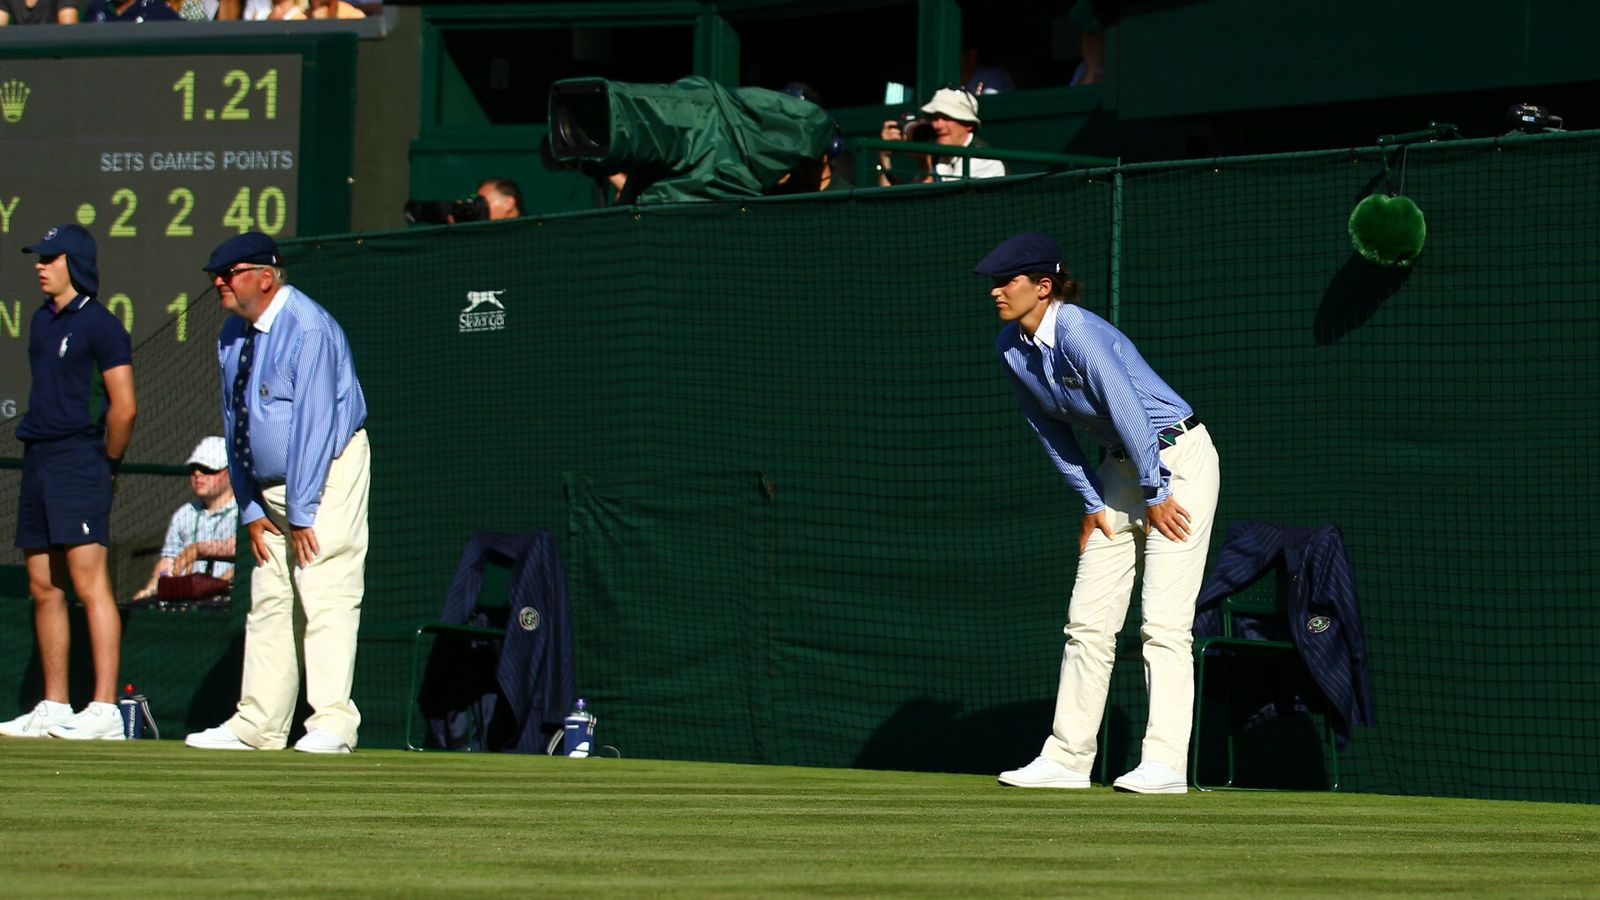 Wimbledon consider replacing line judges with an automated system for 2021 event